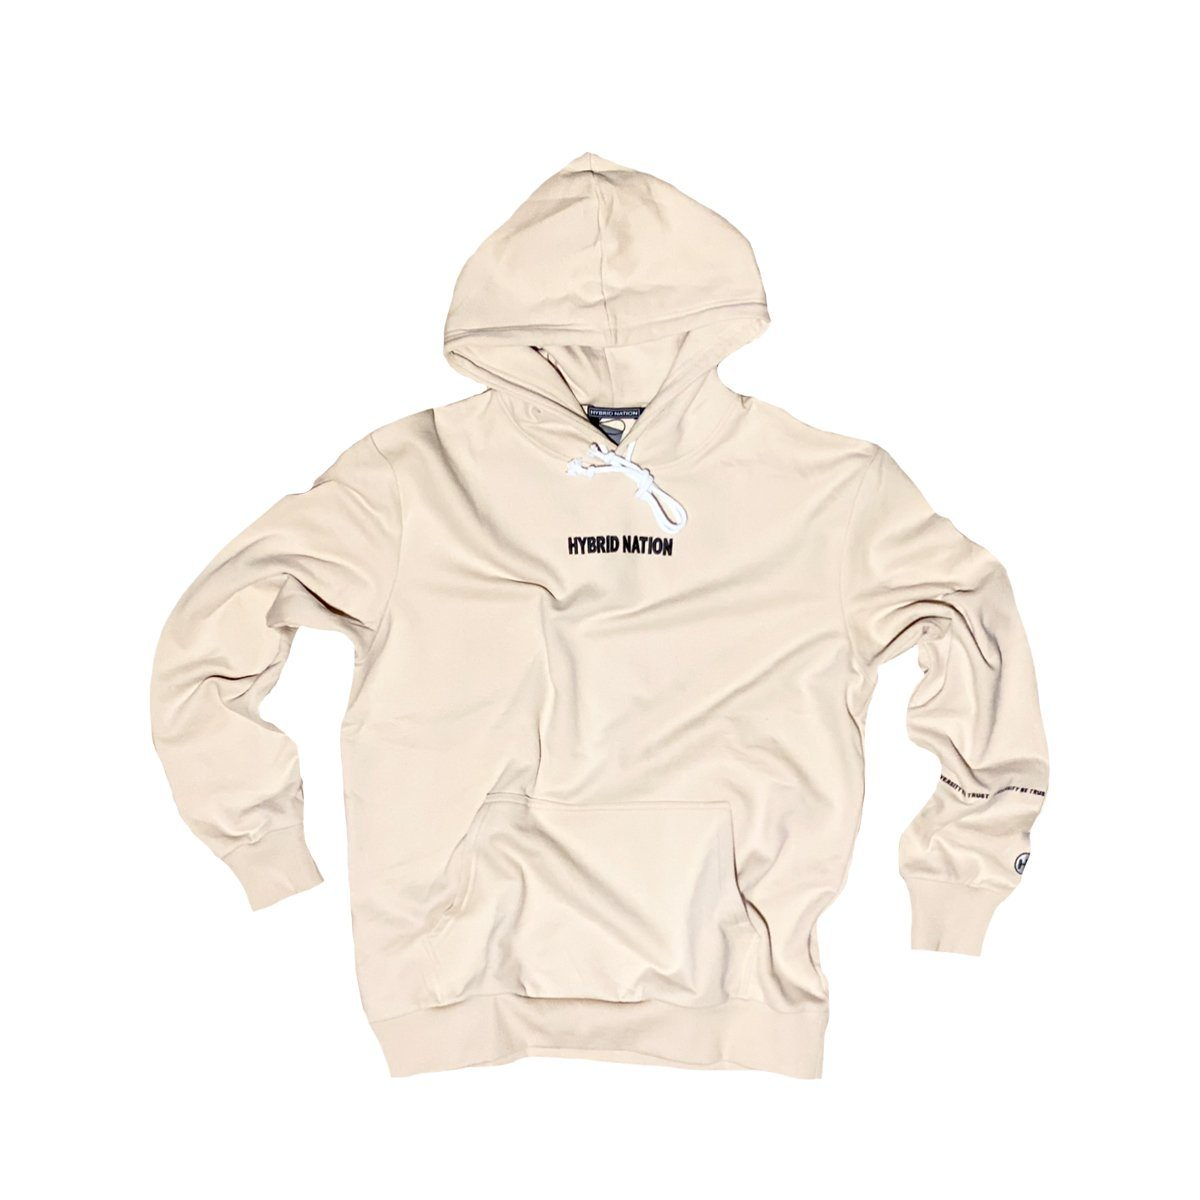 HYBRID NATION BASICS HOODIE (SAND) Men's Basics Sweatshirt Hybrid Nation (China) XS